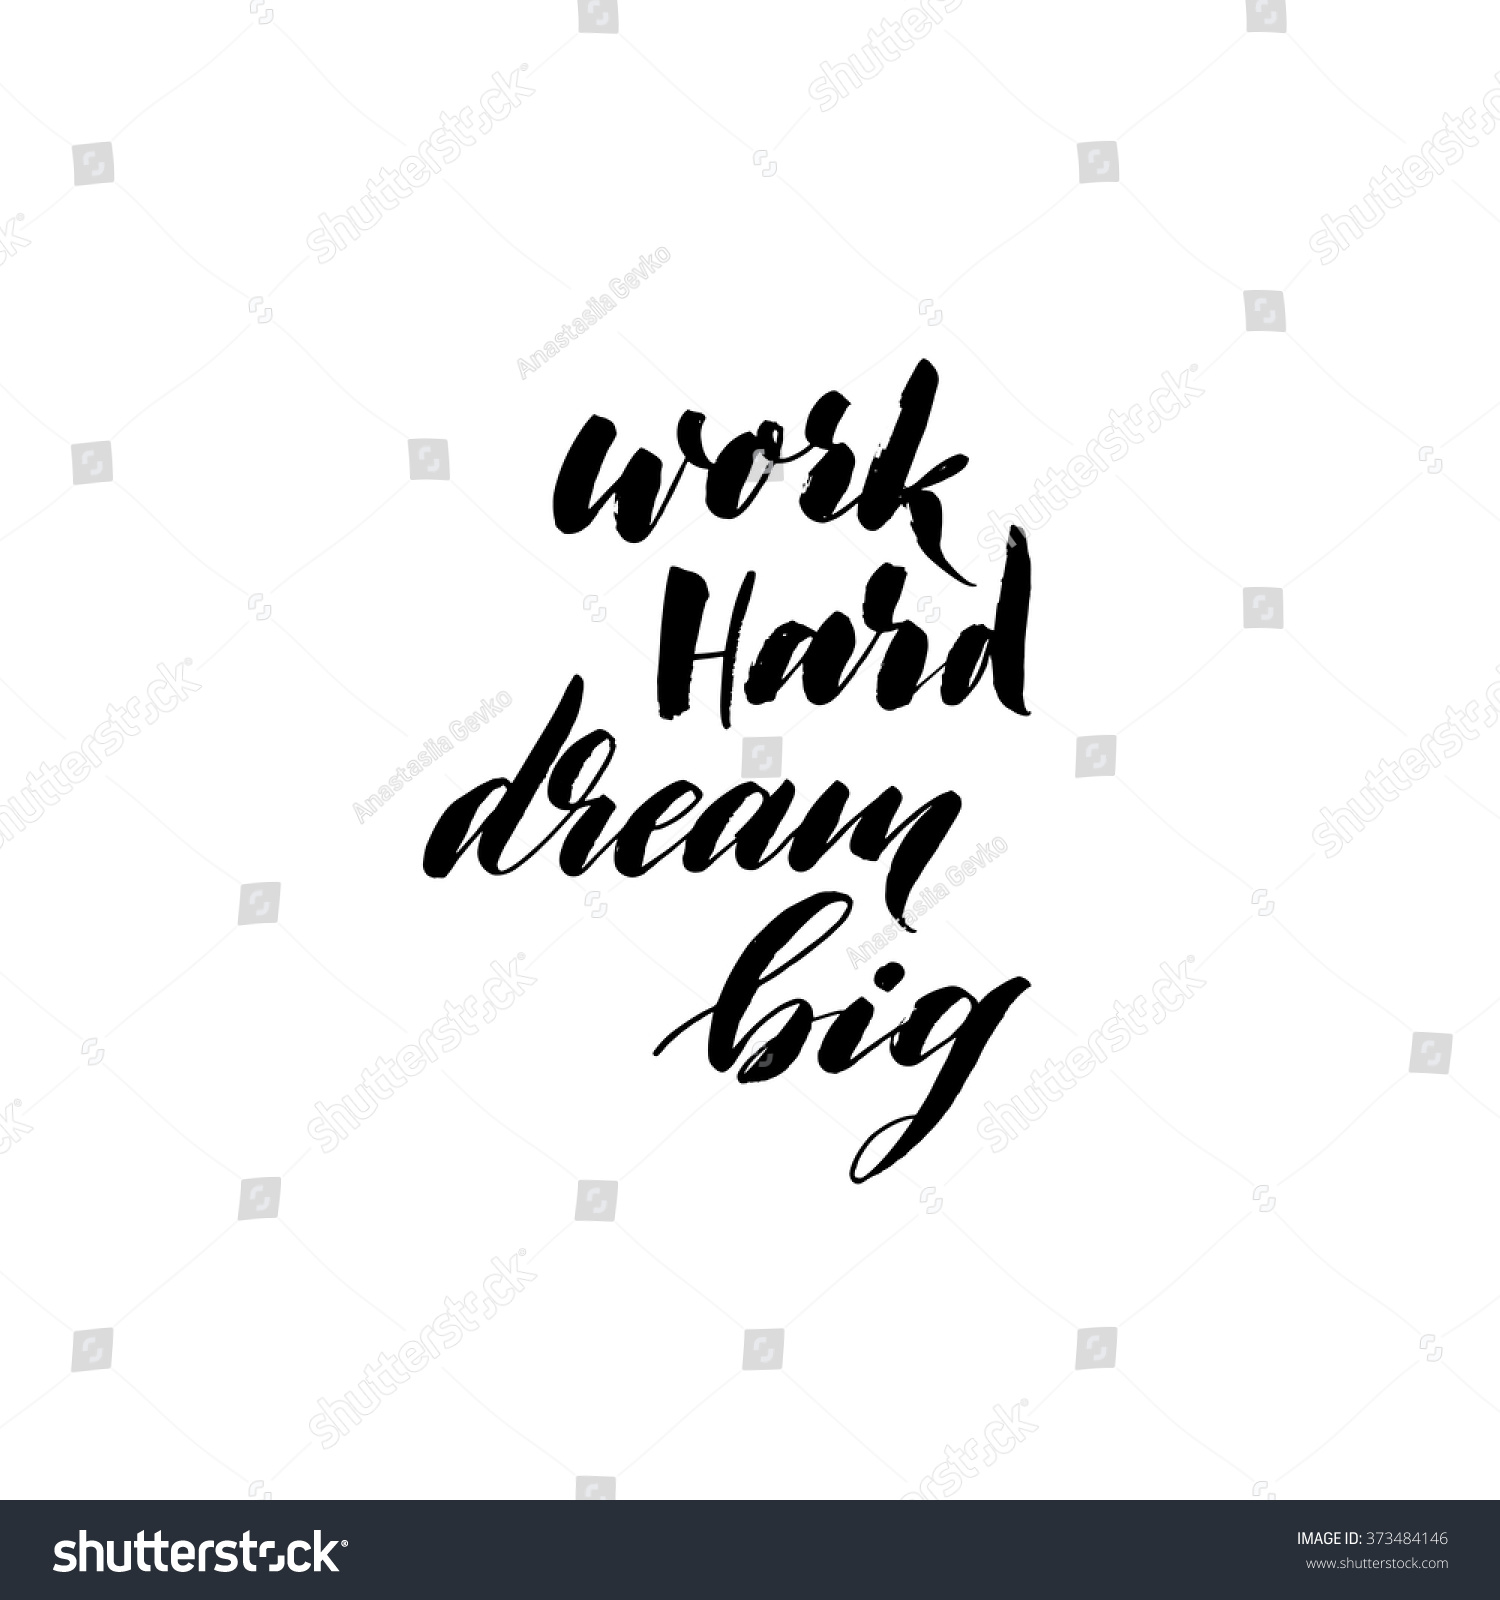 Quotes About Hard Work And Dreams: Work Hard Dream Big Card. Hand Drawn Lettering Poster